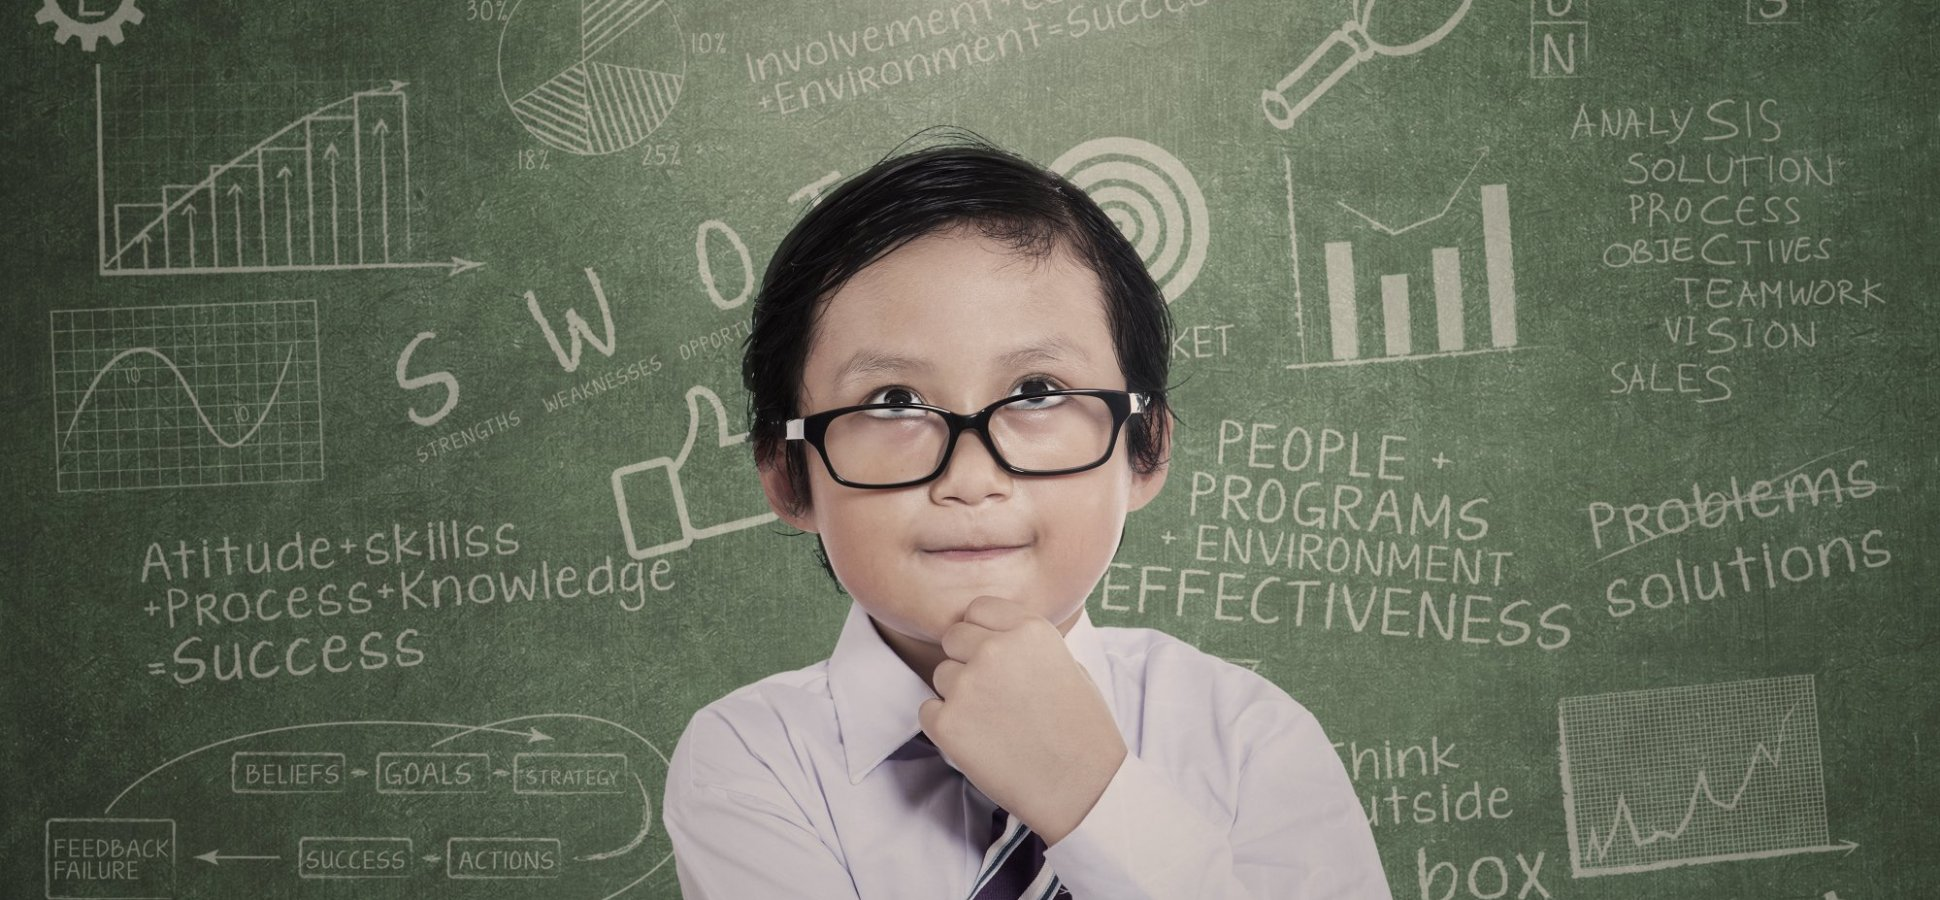 You Don't Need a Leadership Guru: 7 Lessons We Can Learn From Kids